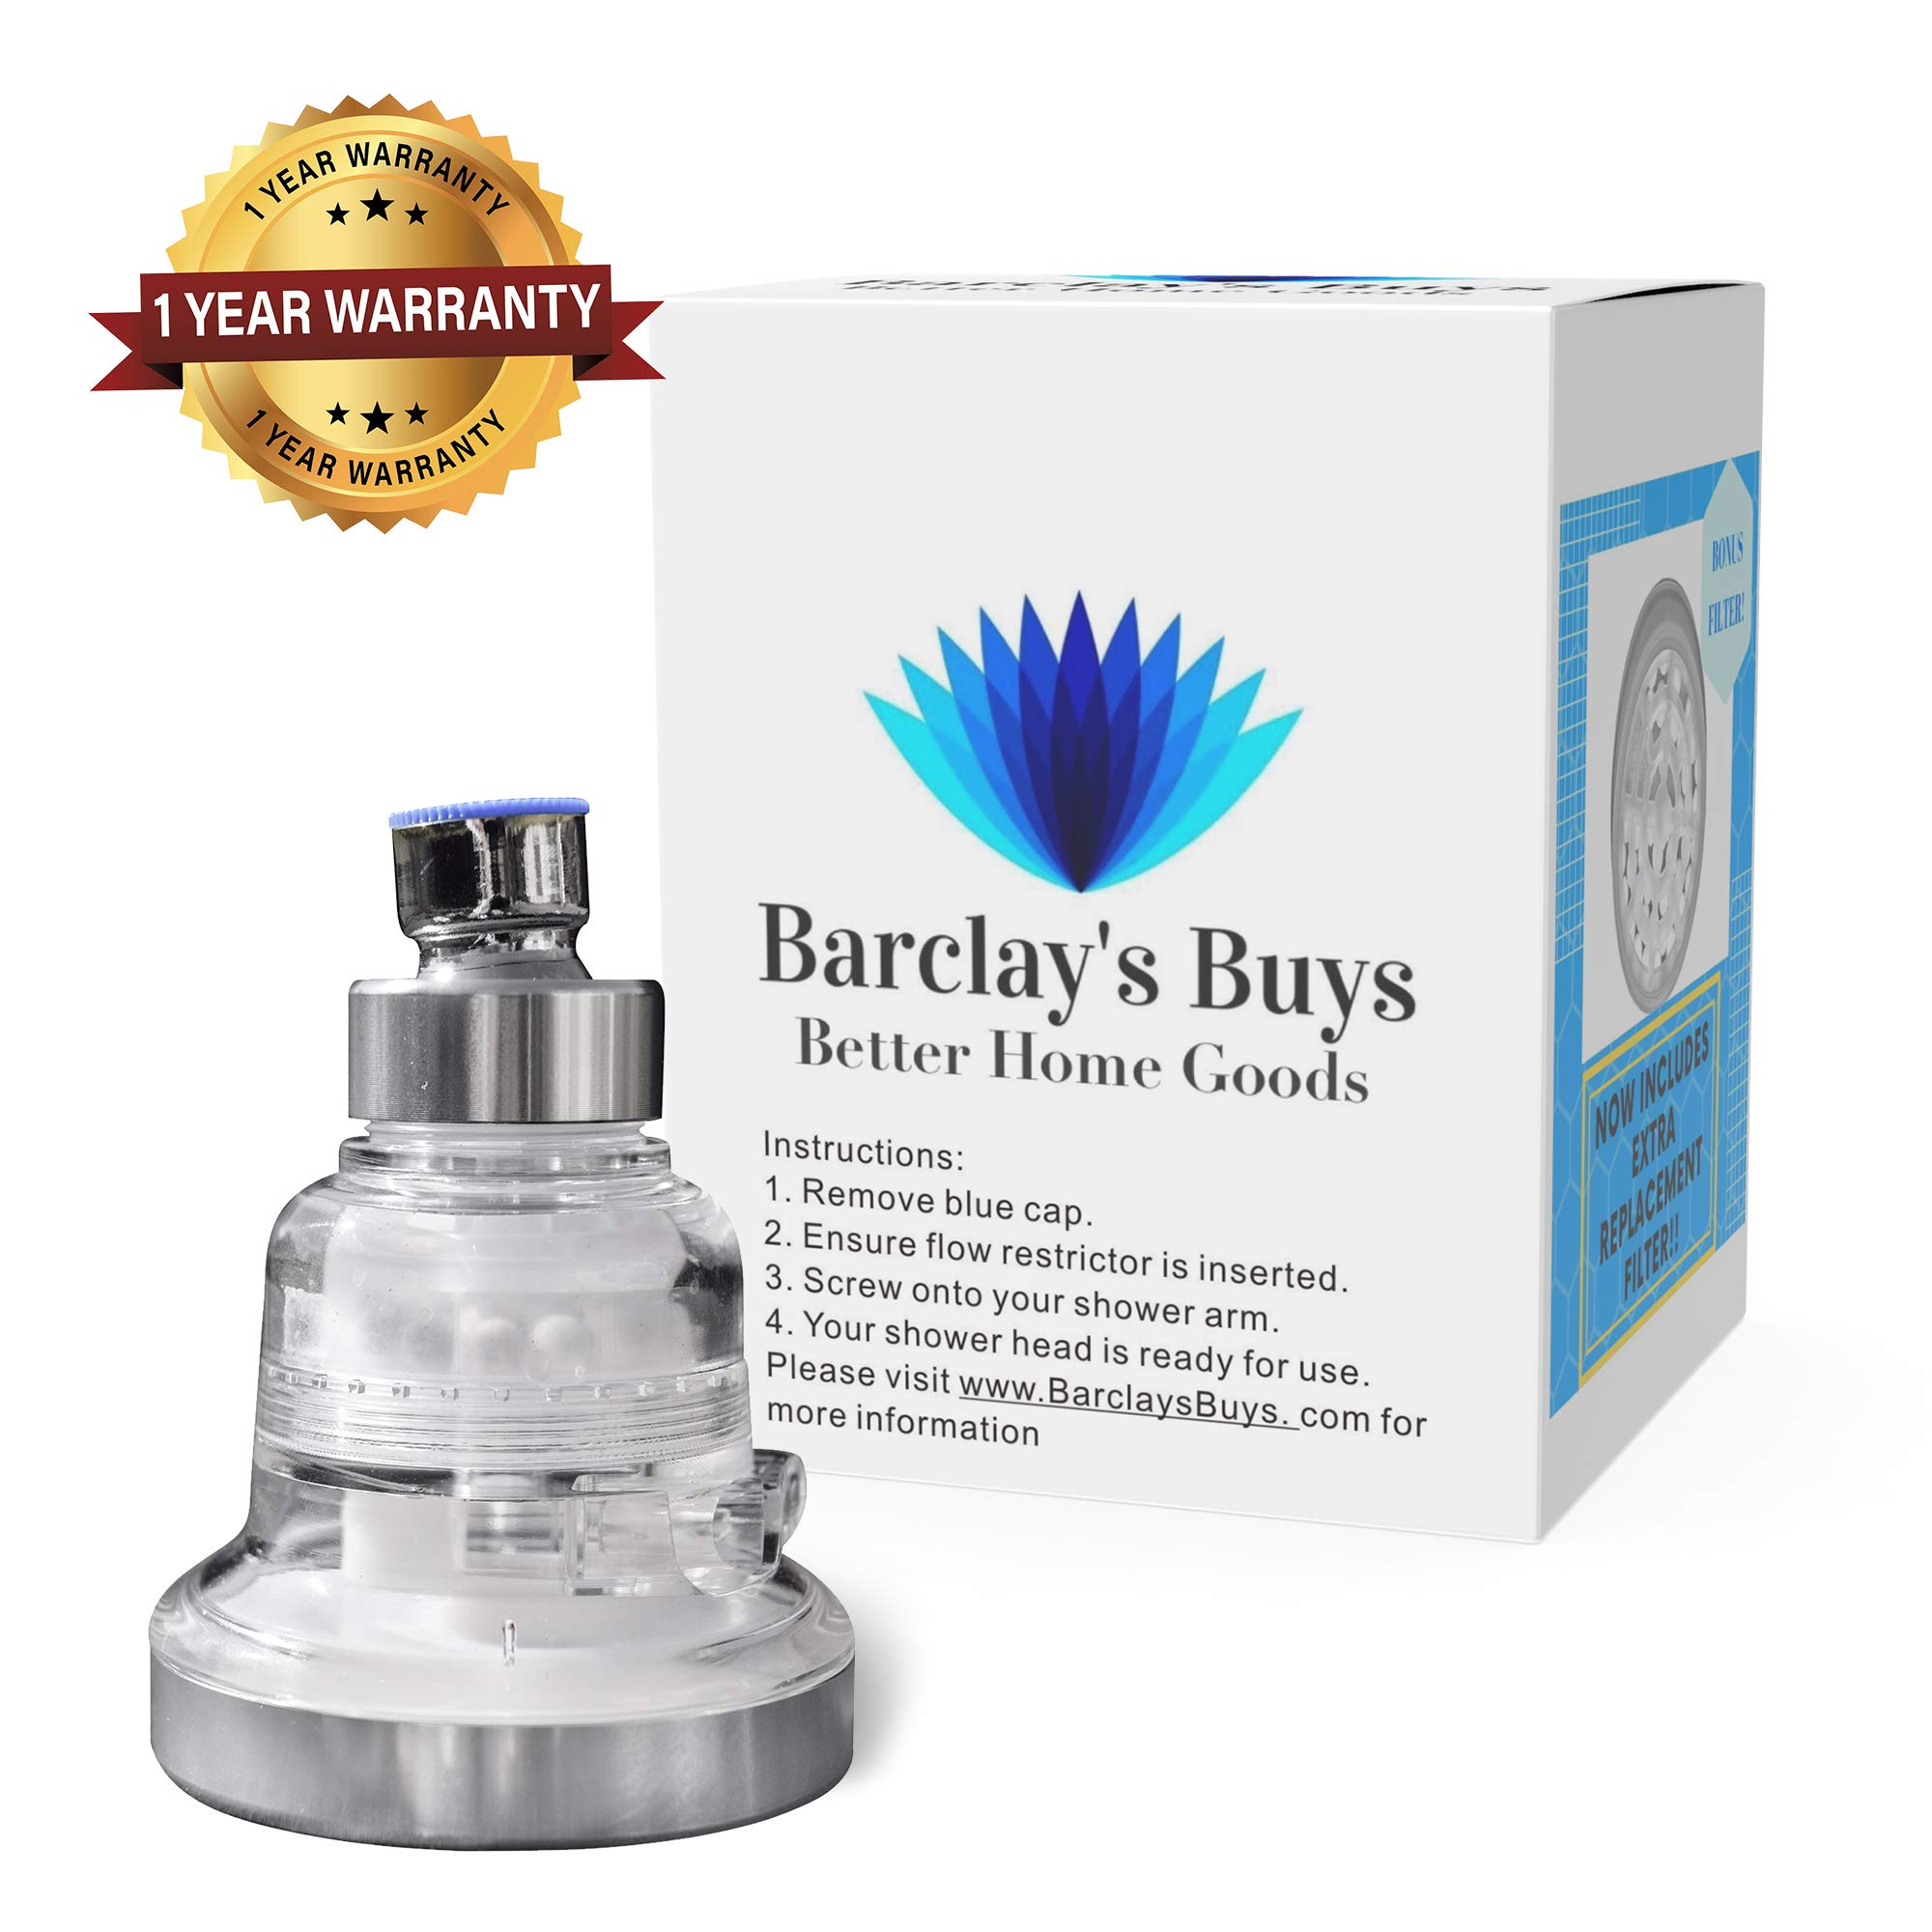 Water Softener Shower Head - High Pressure and Water Saving - 3 Settings - Reduces Chlorine and Chloramine - The Best Shower Filter for Low Water Pressure - Improved Design WITH METAL COMPONENT PARTS by Barclay's Buys Better Home Goods